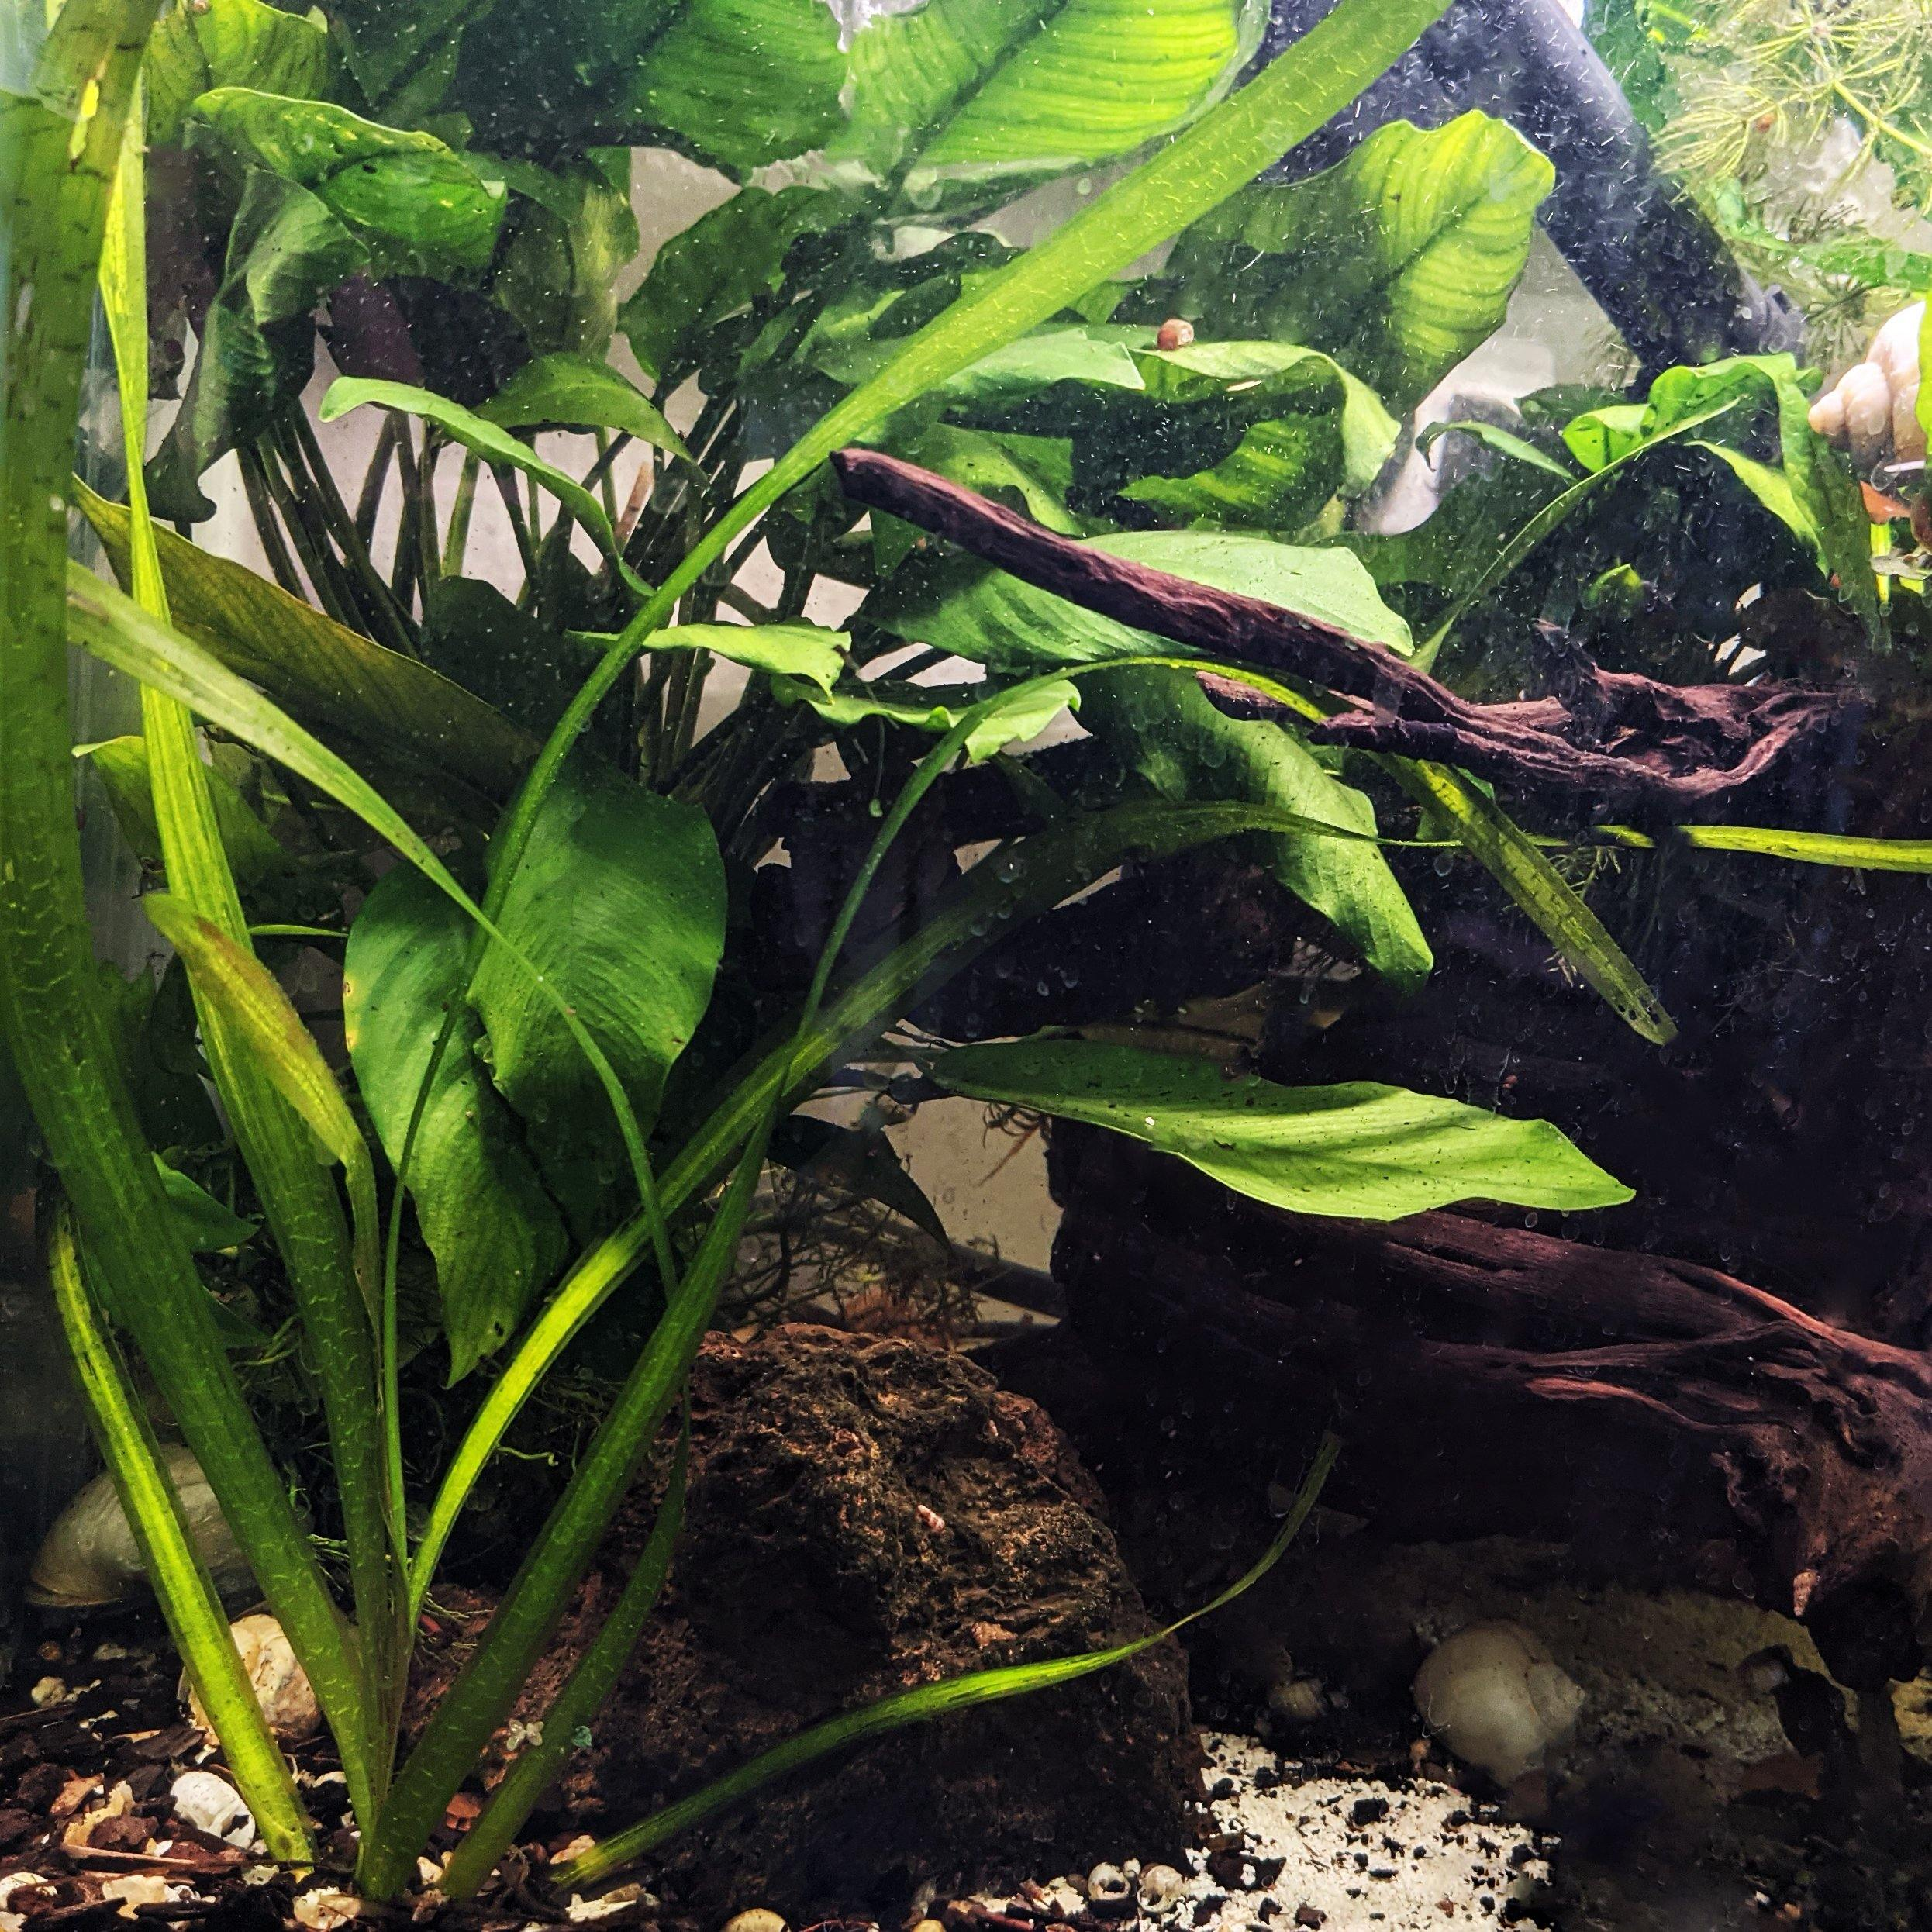 Jungle Vallisneria - Windy City Aquariums